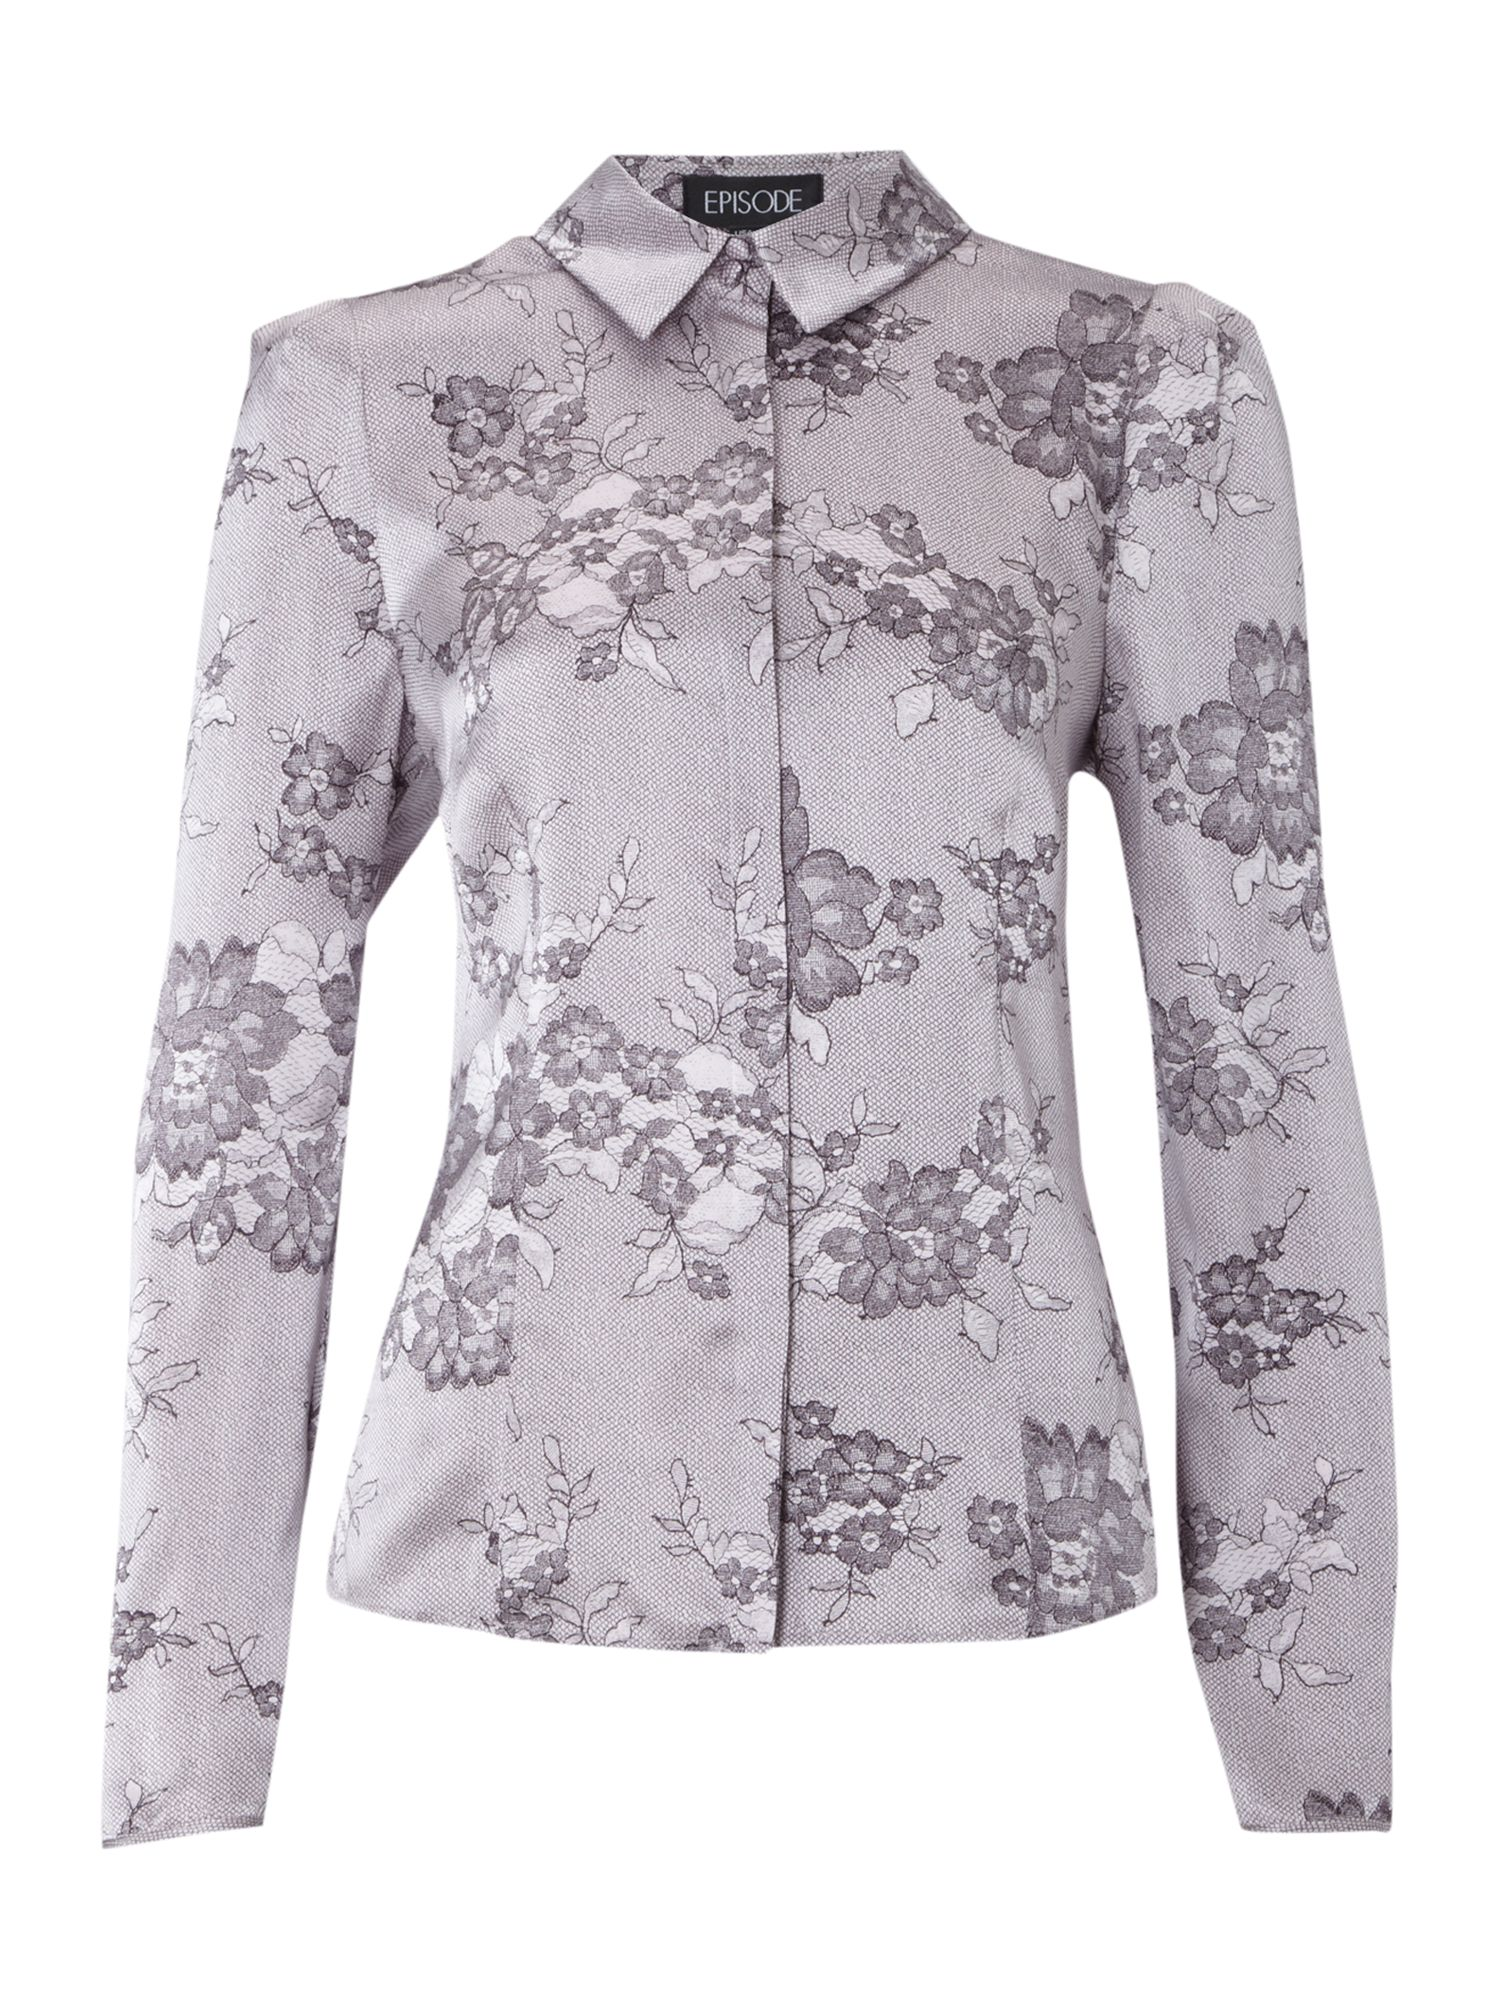 Episode Womens Episode Lace print blouse, White product image